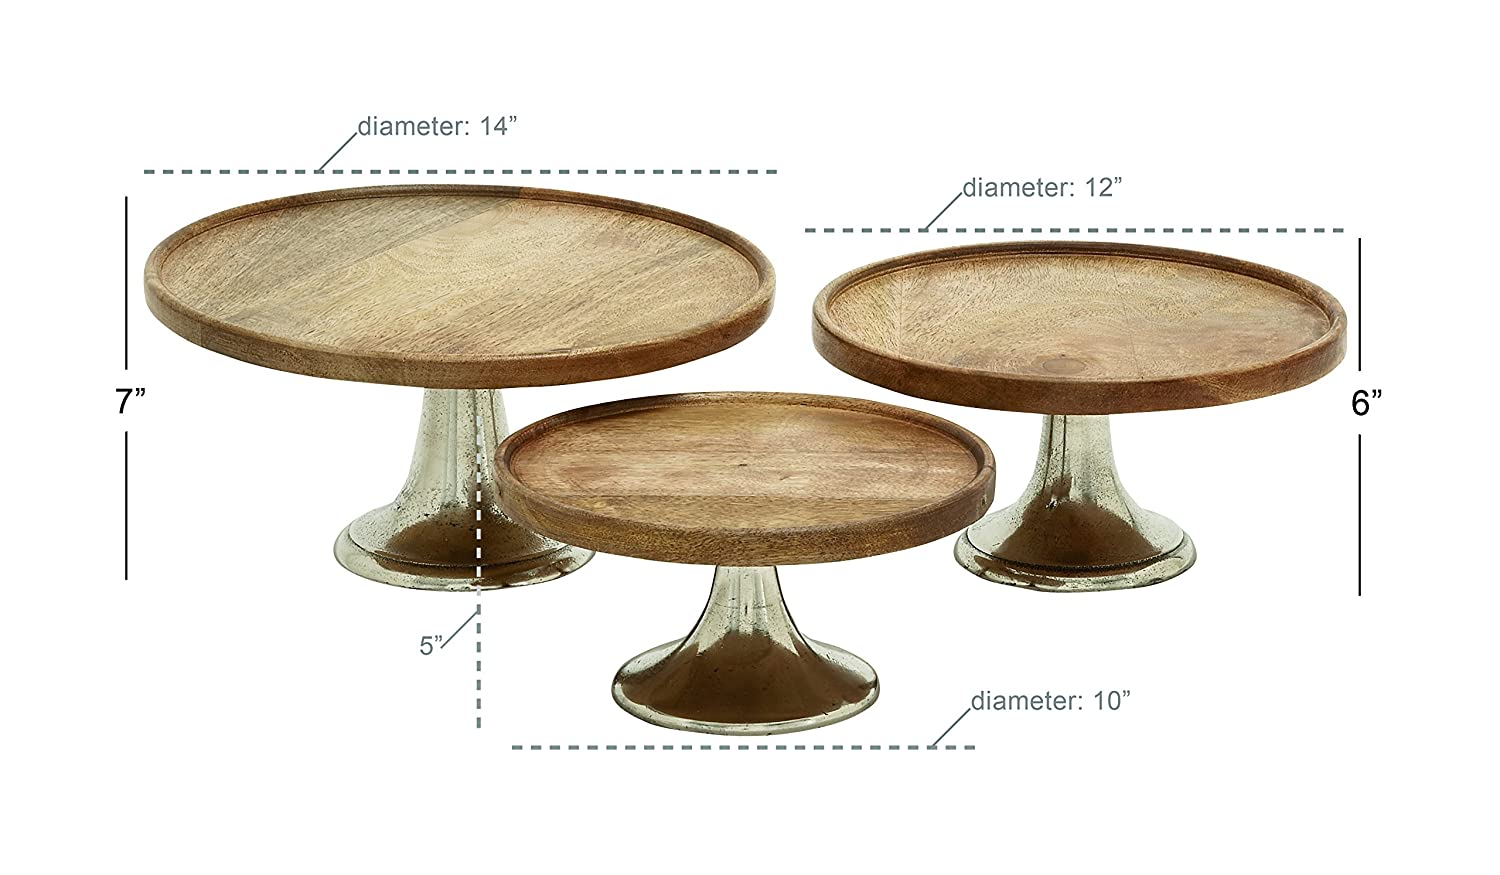 Deco 79 14668 wood aluminum cake plate set of 3 10 12 14 amazon in home kitchen